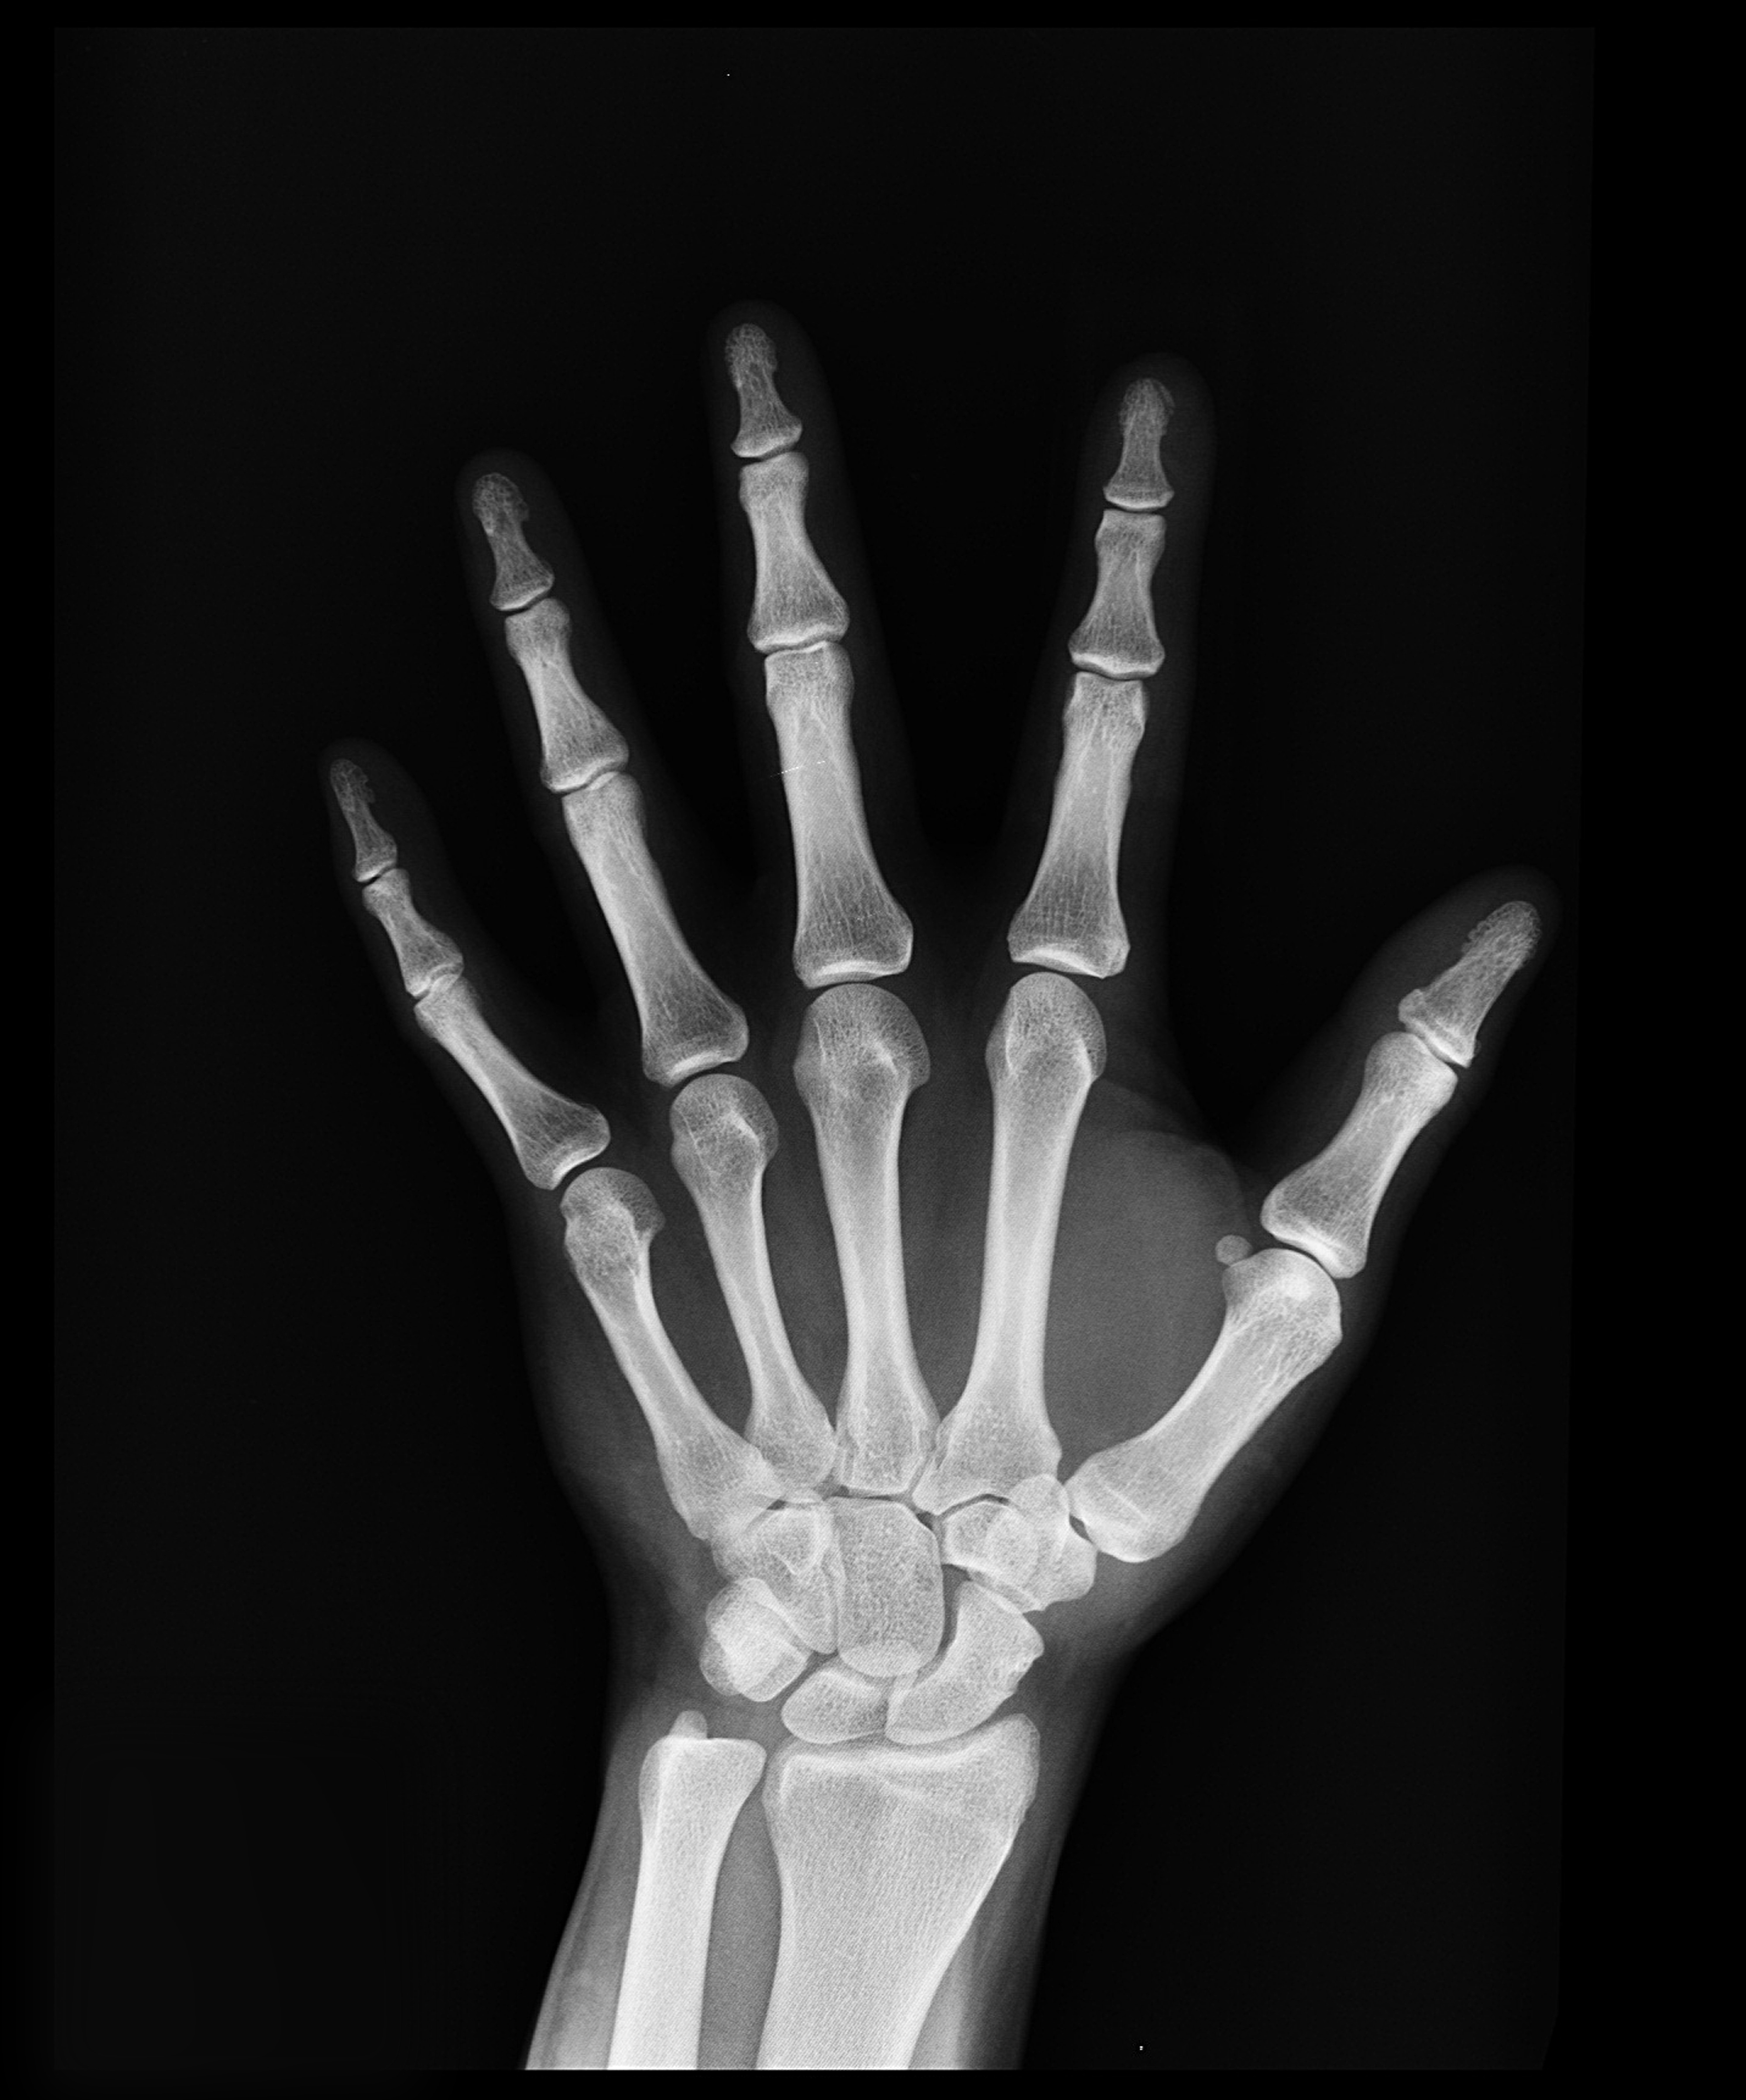 Black And White Bones Hand 207496 American Society For Nutrition